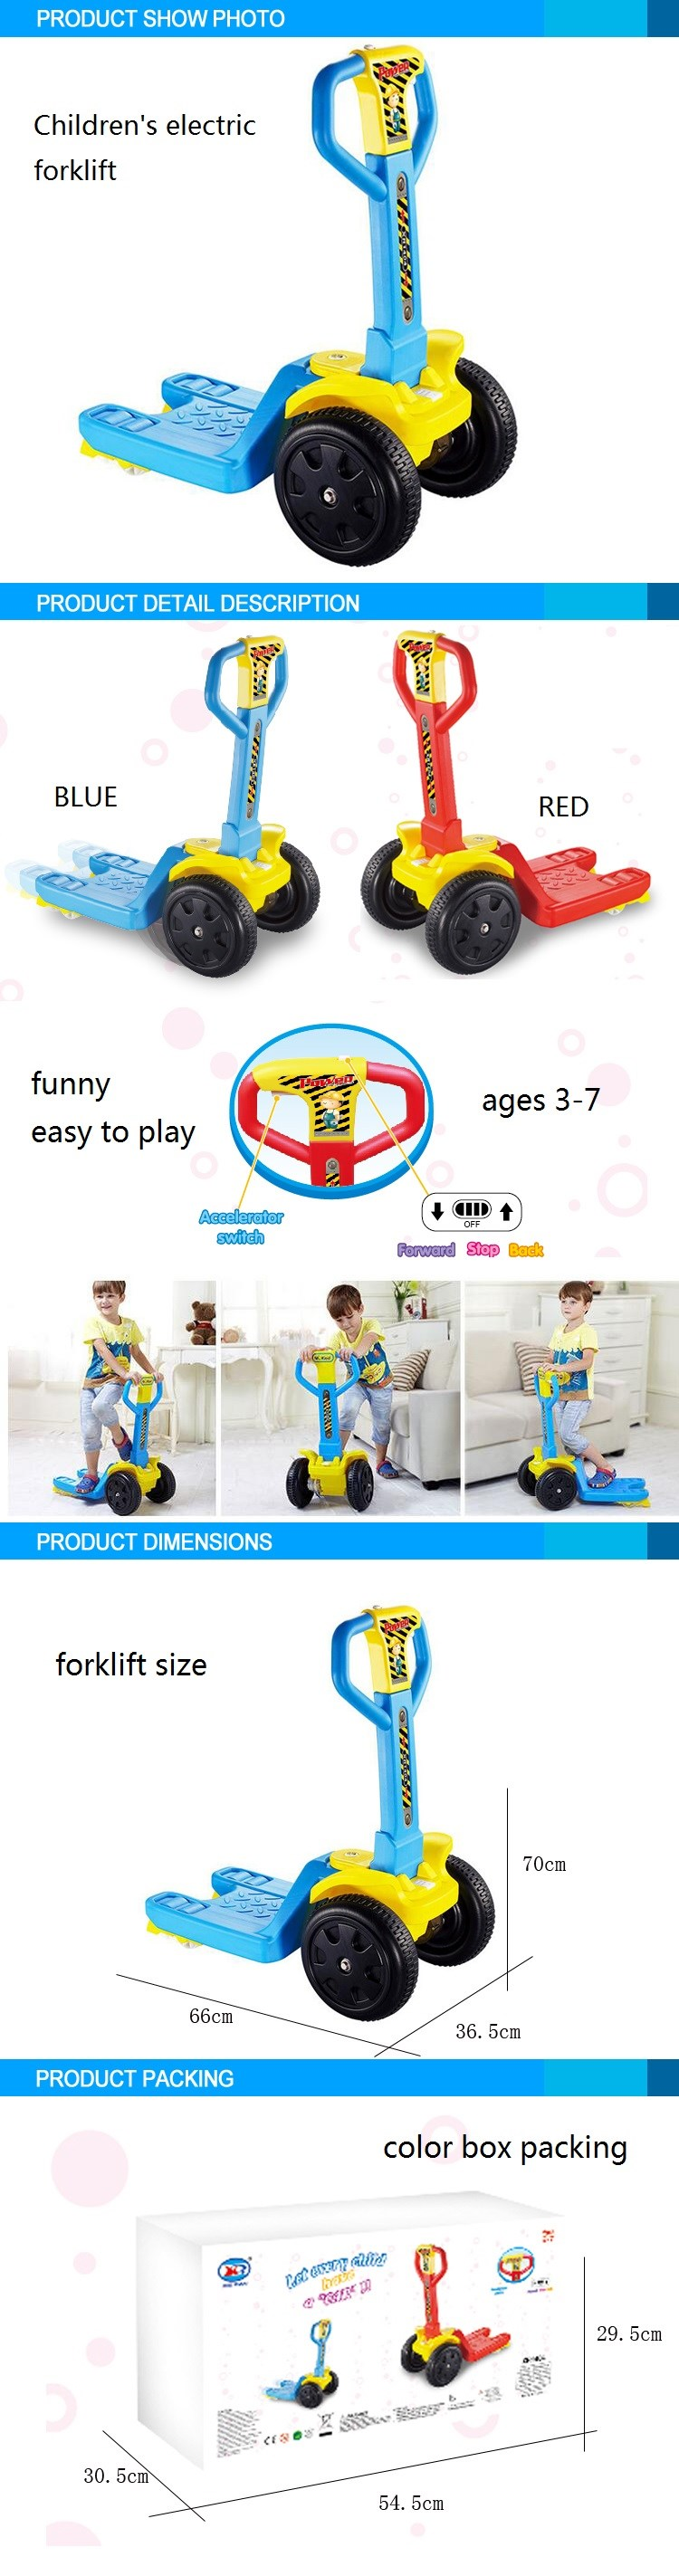 Funny Series high quality bicycle 2016 Children electric forklift for kids